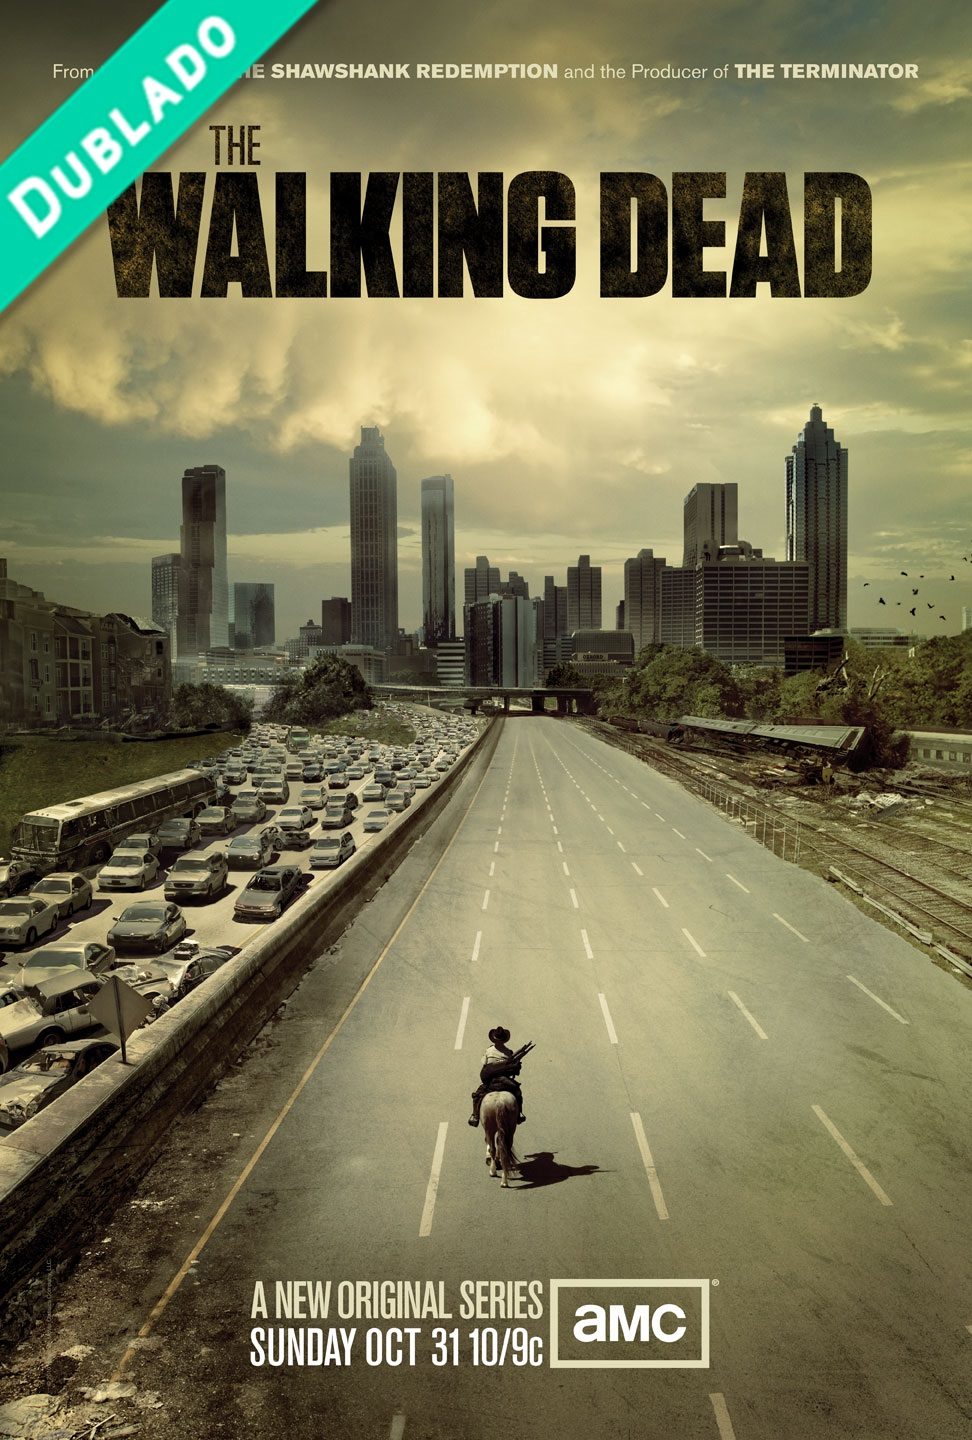 The Walking Dead 1ª Temporada Bluray 720p Dublado Torrent Download